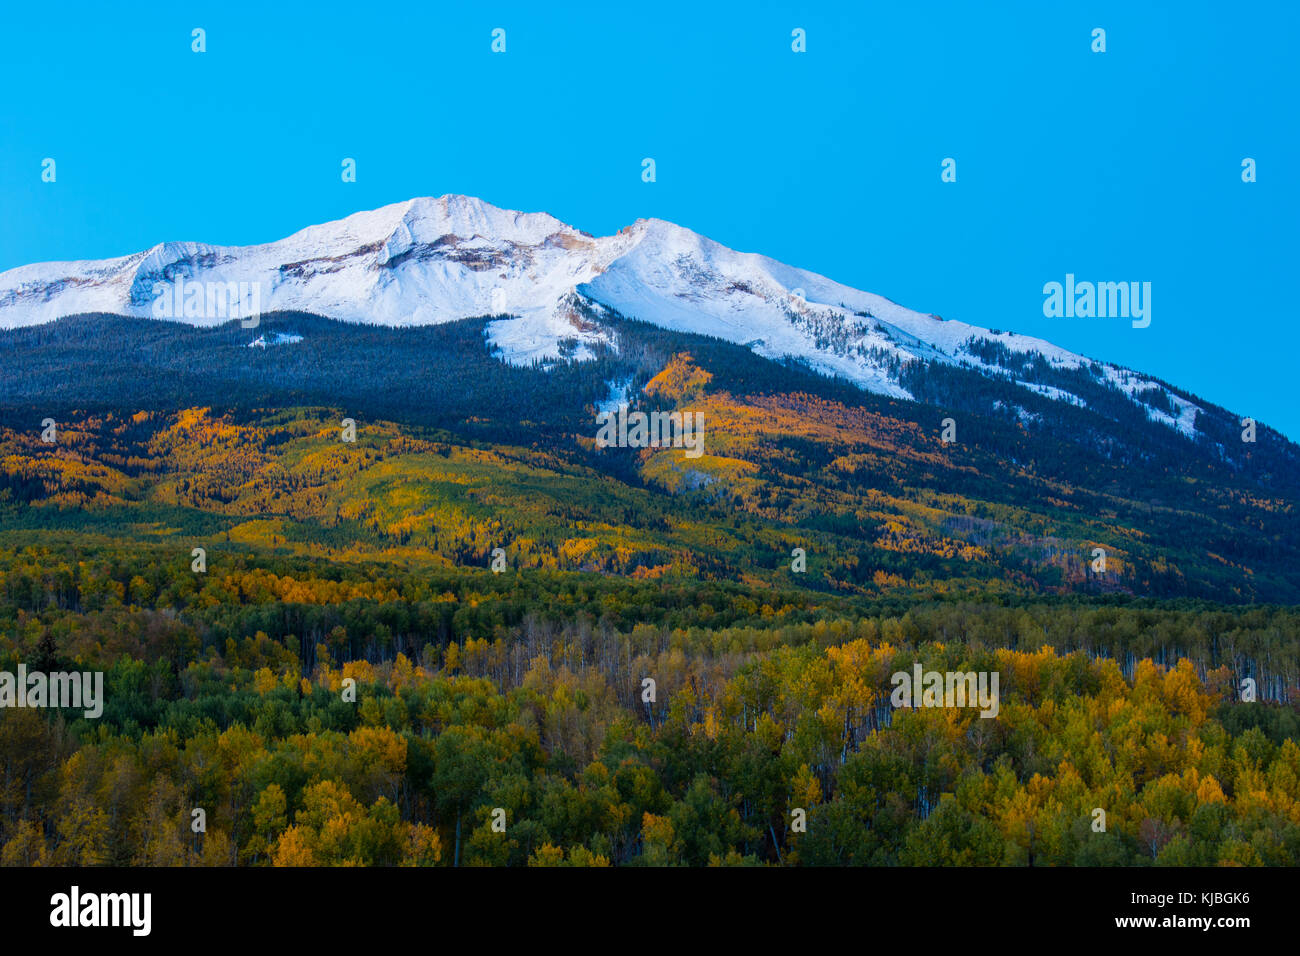 Mount Beckwith Early Morning.  Shot from Kebler Pass near Crested Butte Colorado in the USA - Stock Image